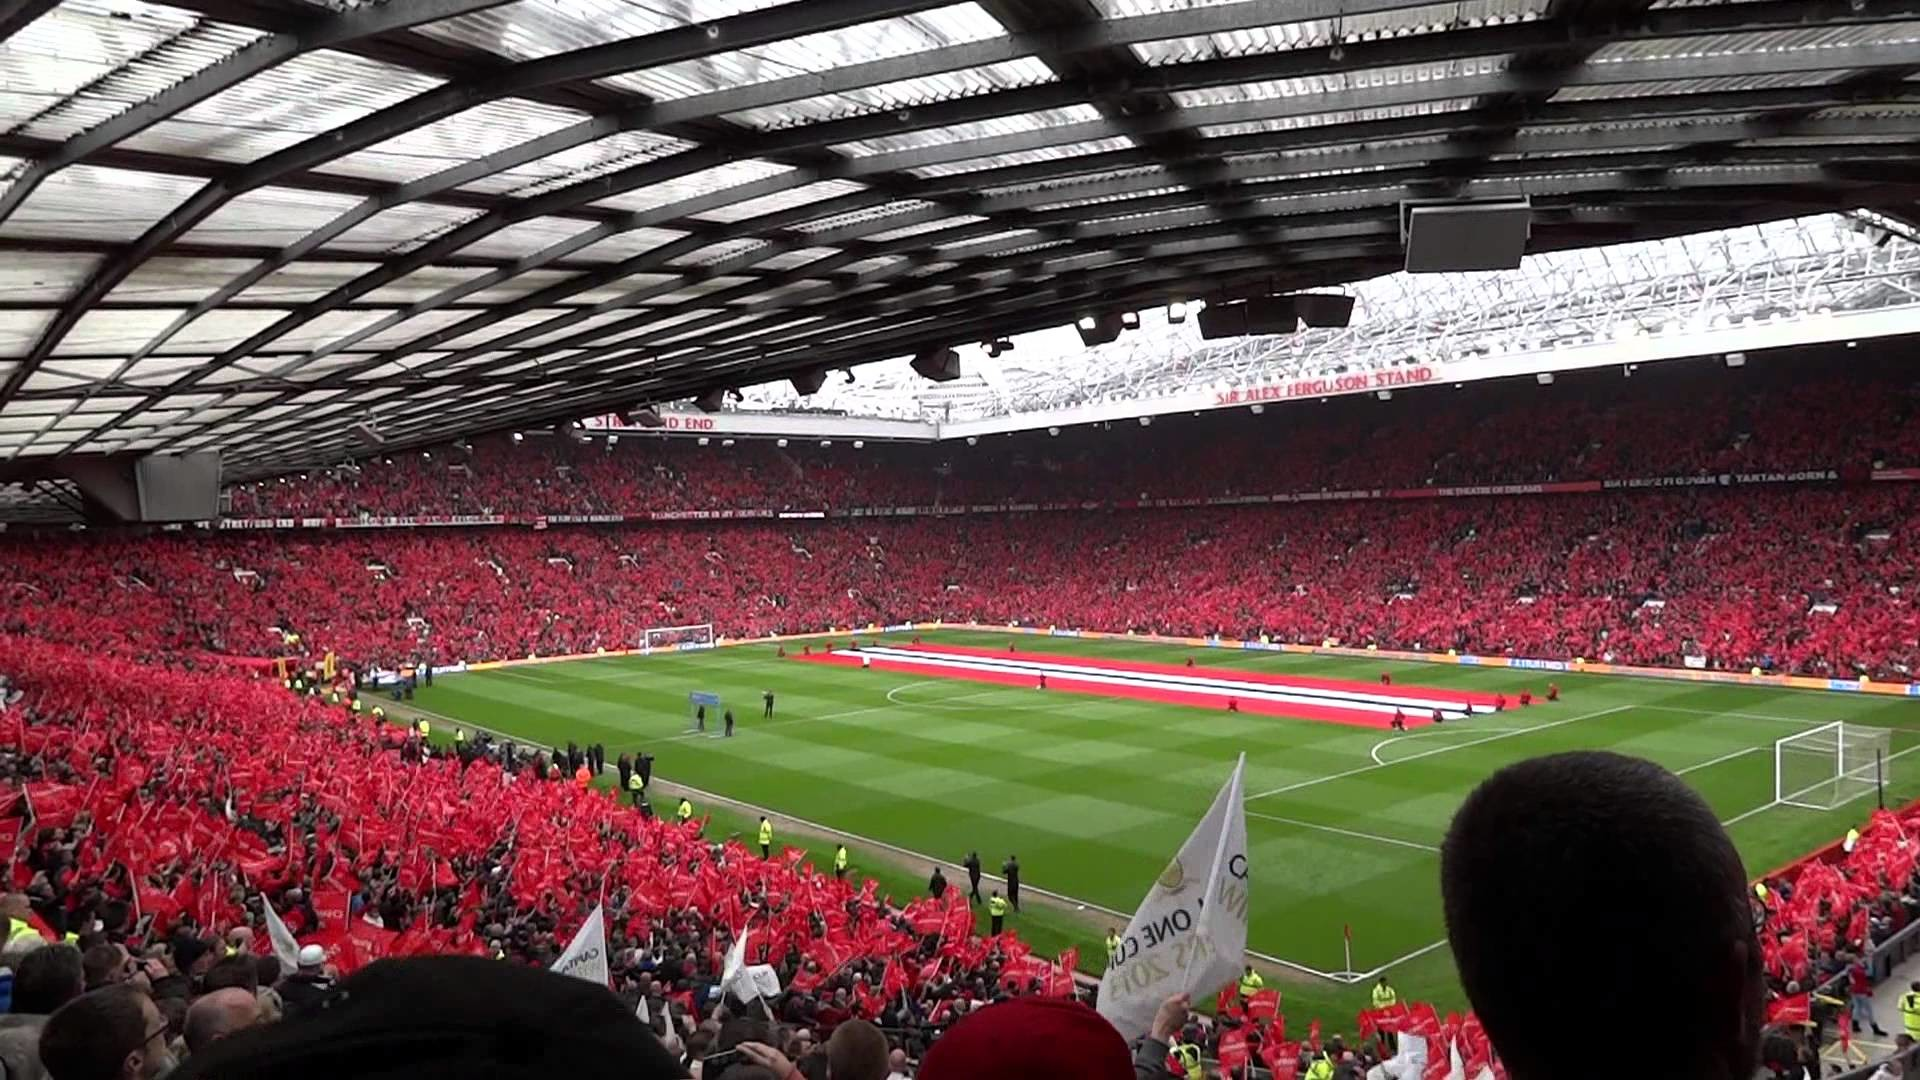 1920x1080 HD 'Glory Glory Man United' at Sir Alex Ferguson's last Old Trafford match  - Sunday 12/05/2013 - YouTube